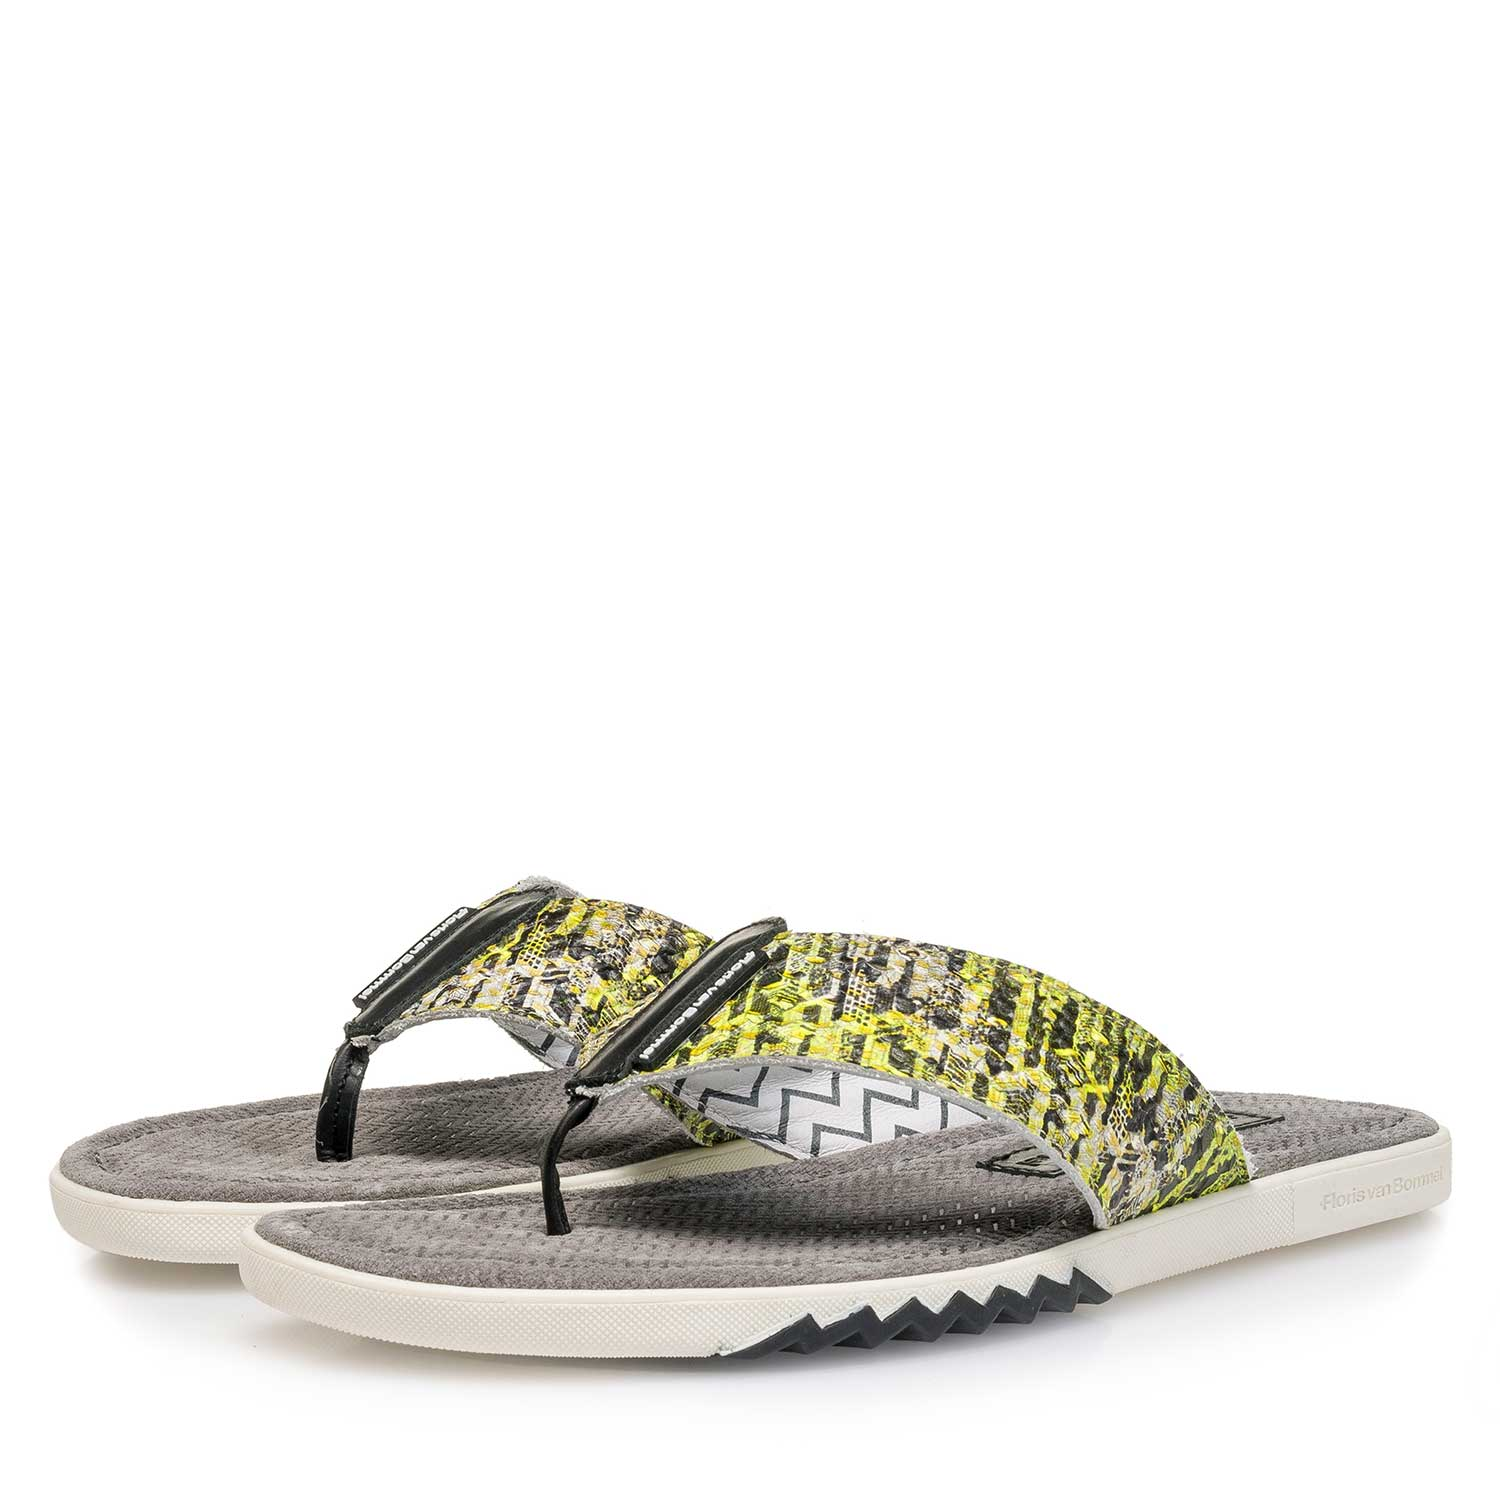 20201/02 - Yellow snake print leather thong slipper